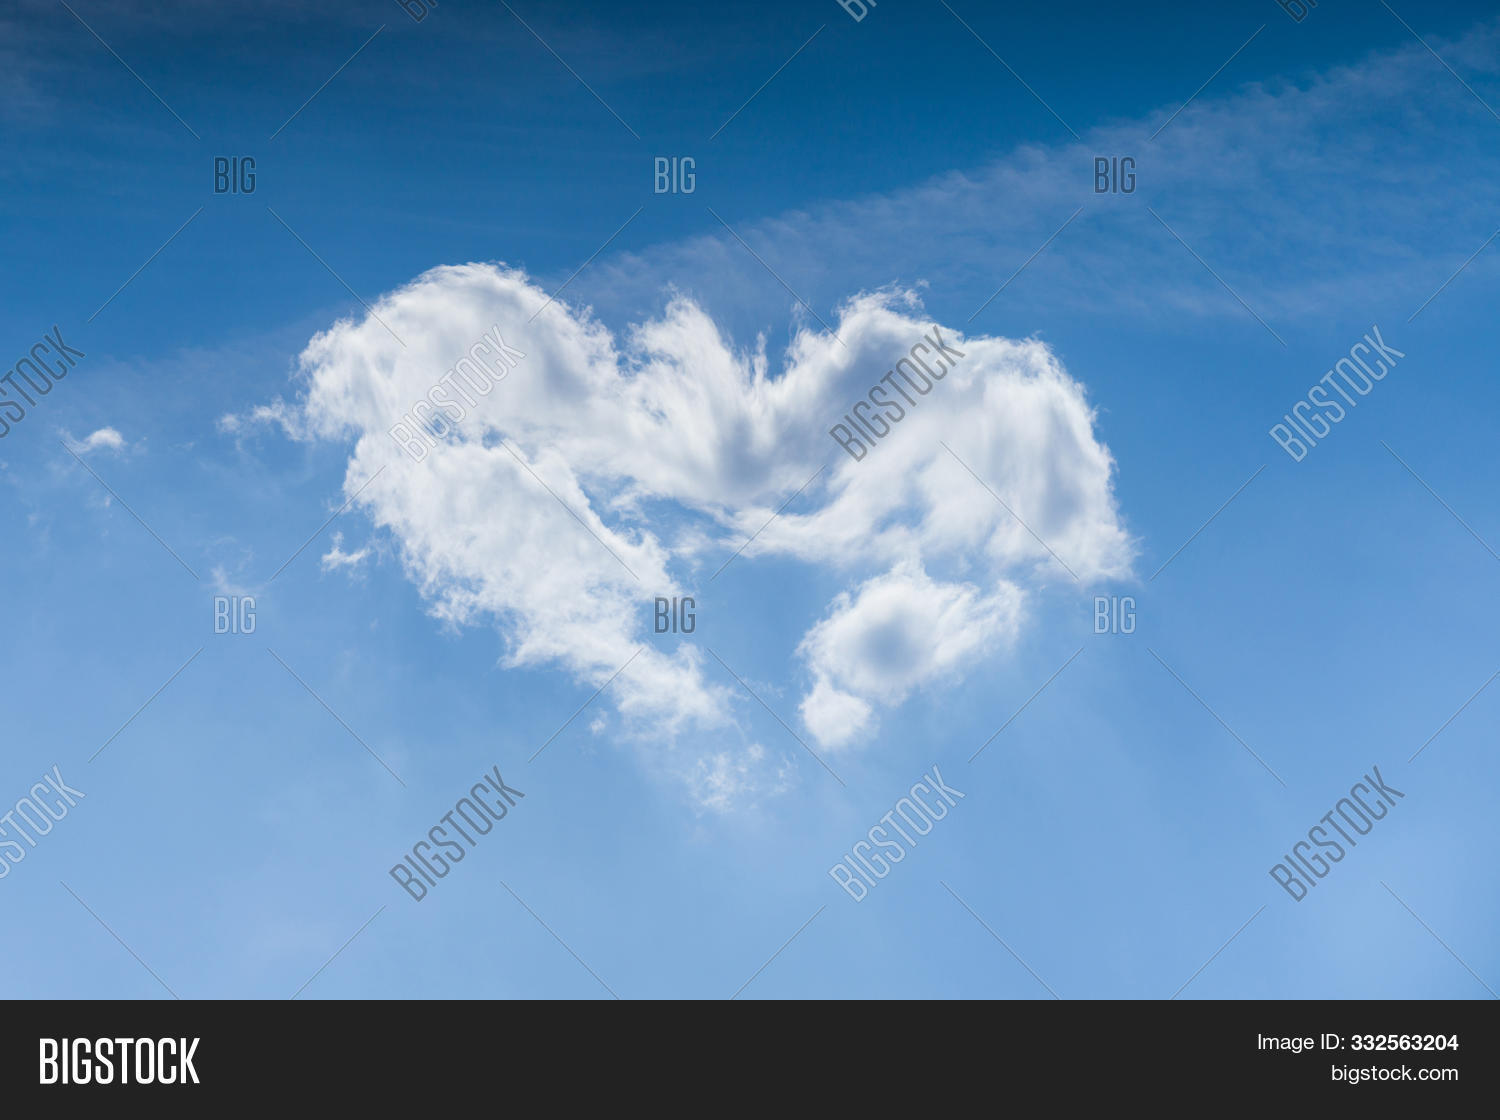 above,abstract,aerial,air,atmosphere,background,beautiful,beauty,blue,bright,climate,cloud,cloudscape,cloudy,cumulonimbus,cumulus,day,dream,early,environment,fluffy,heart,heaven,landscape,light,majestic,meteorology,morning,nature,nobody,oxygen,ozone,pattern,poster,scenic,shaped,sky,space,stratosphere,summer,sun,sunny,sunshine,top,tranquil,view,wallpaper,weather,white,wind